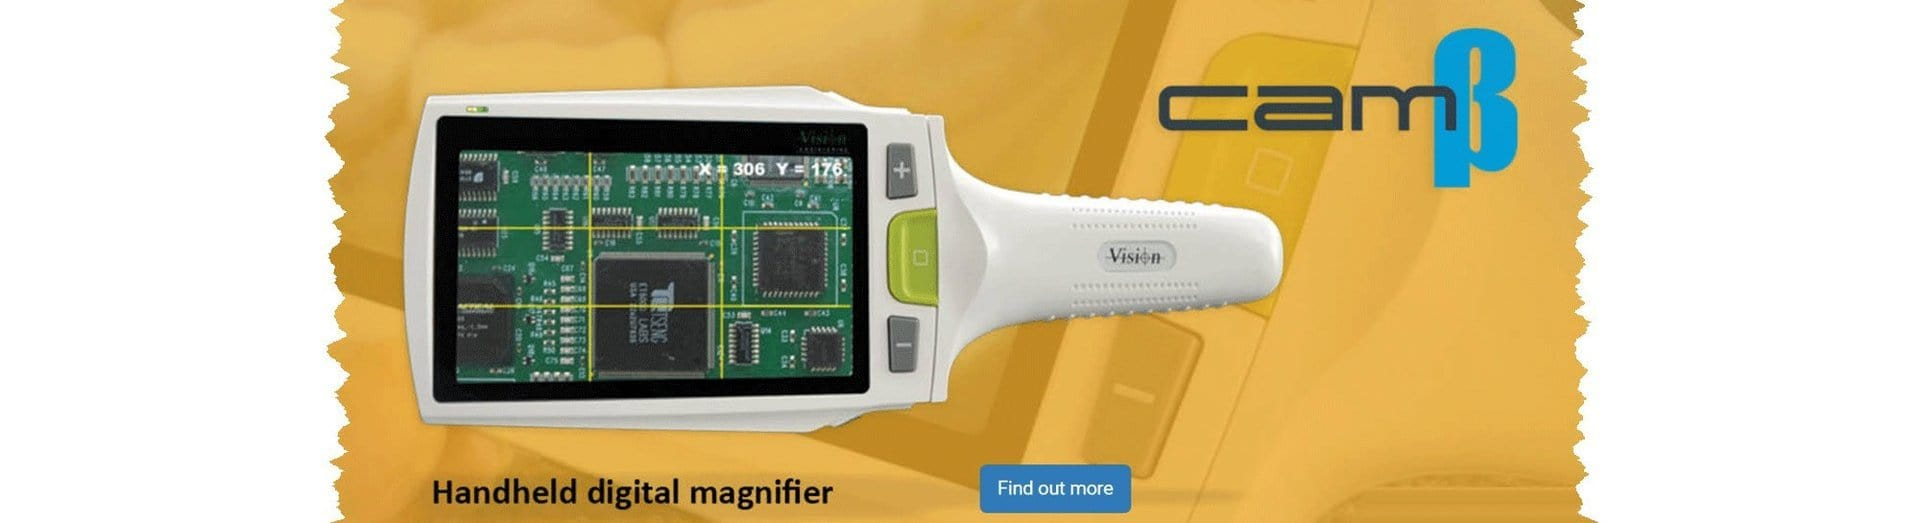 CamB Digital Magnifier